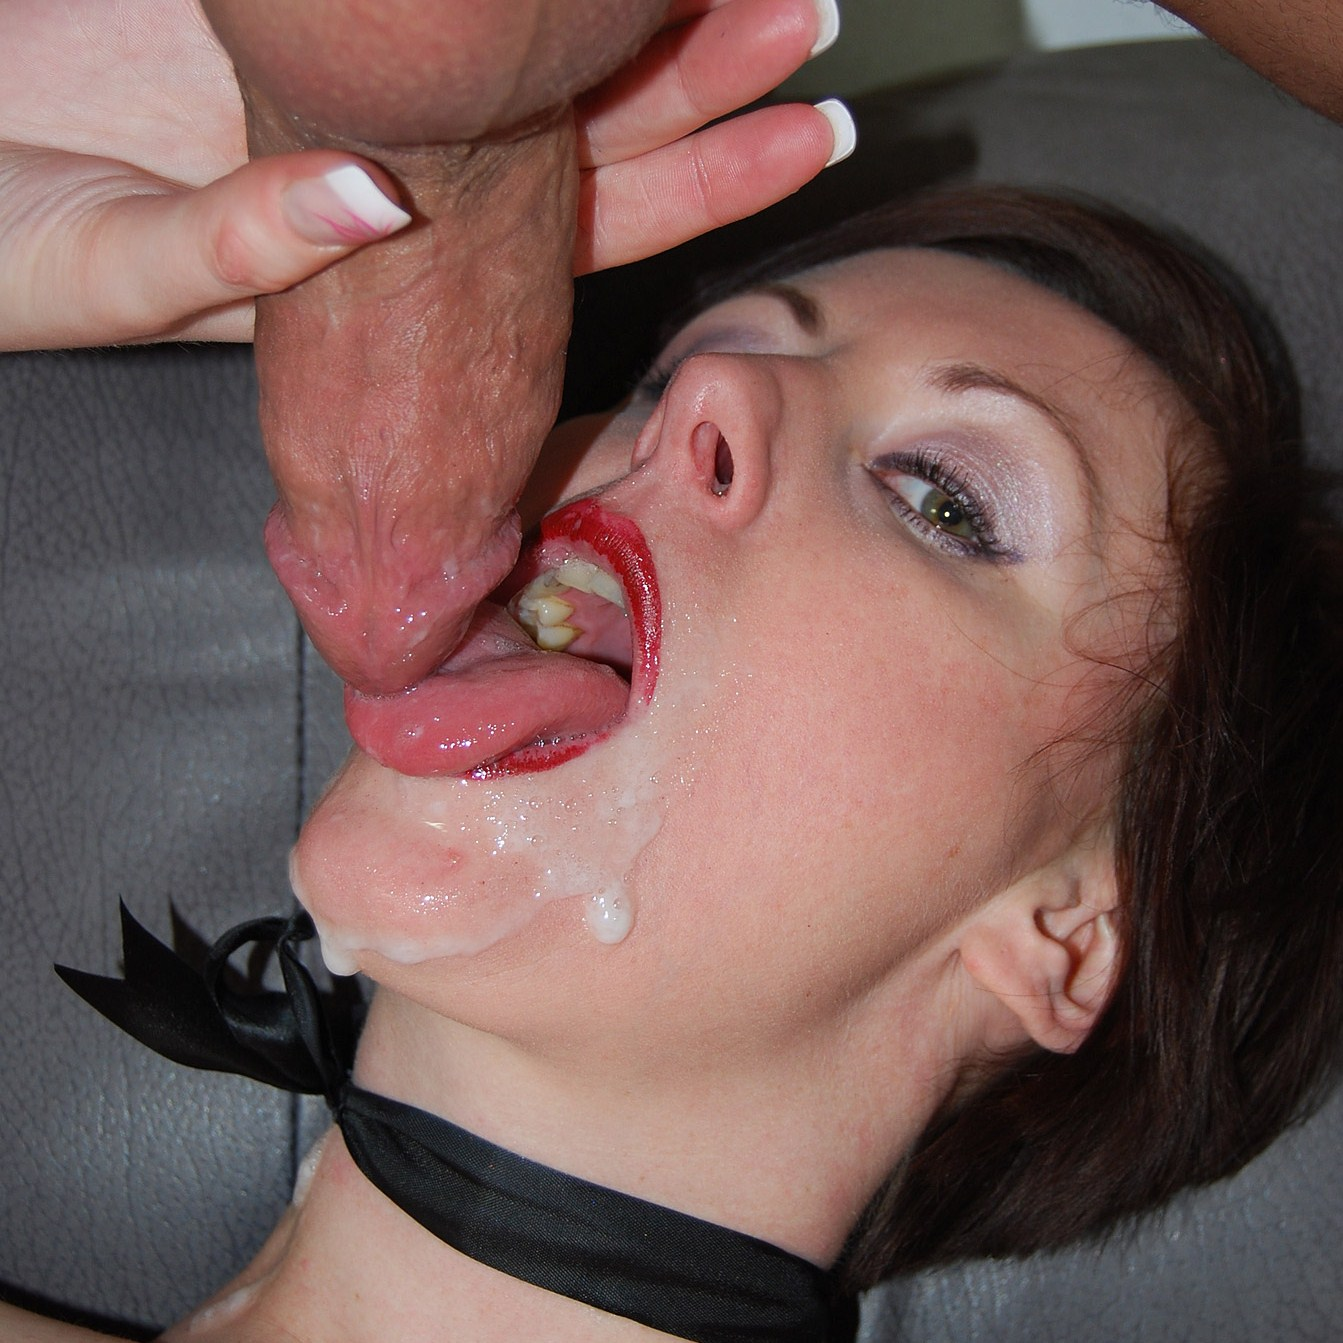 image Hottest cum in mouth 9 in 69 position